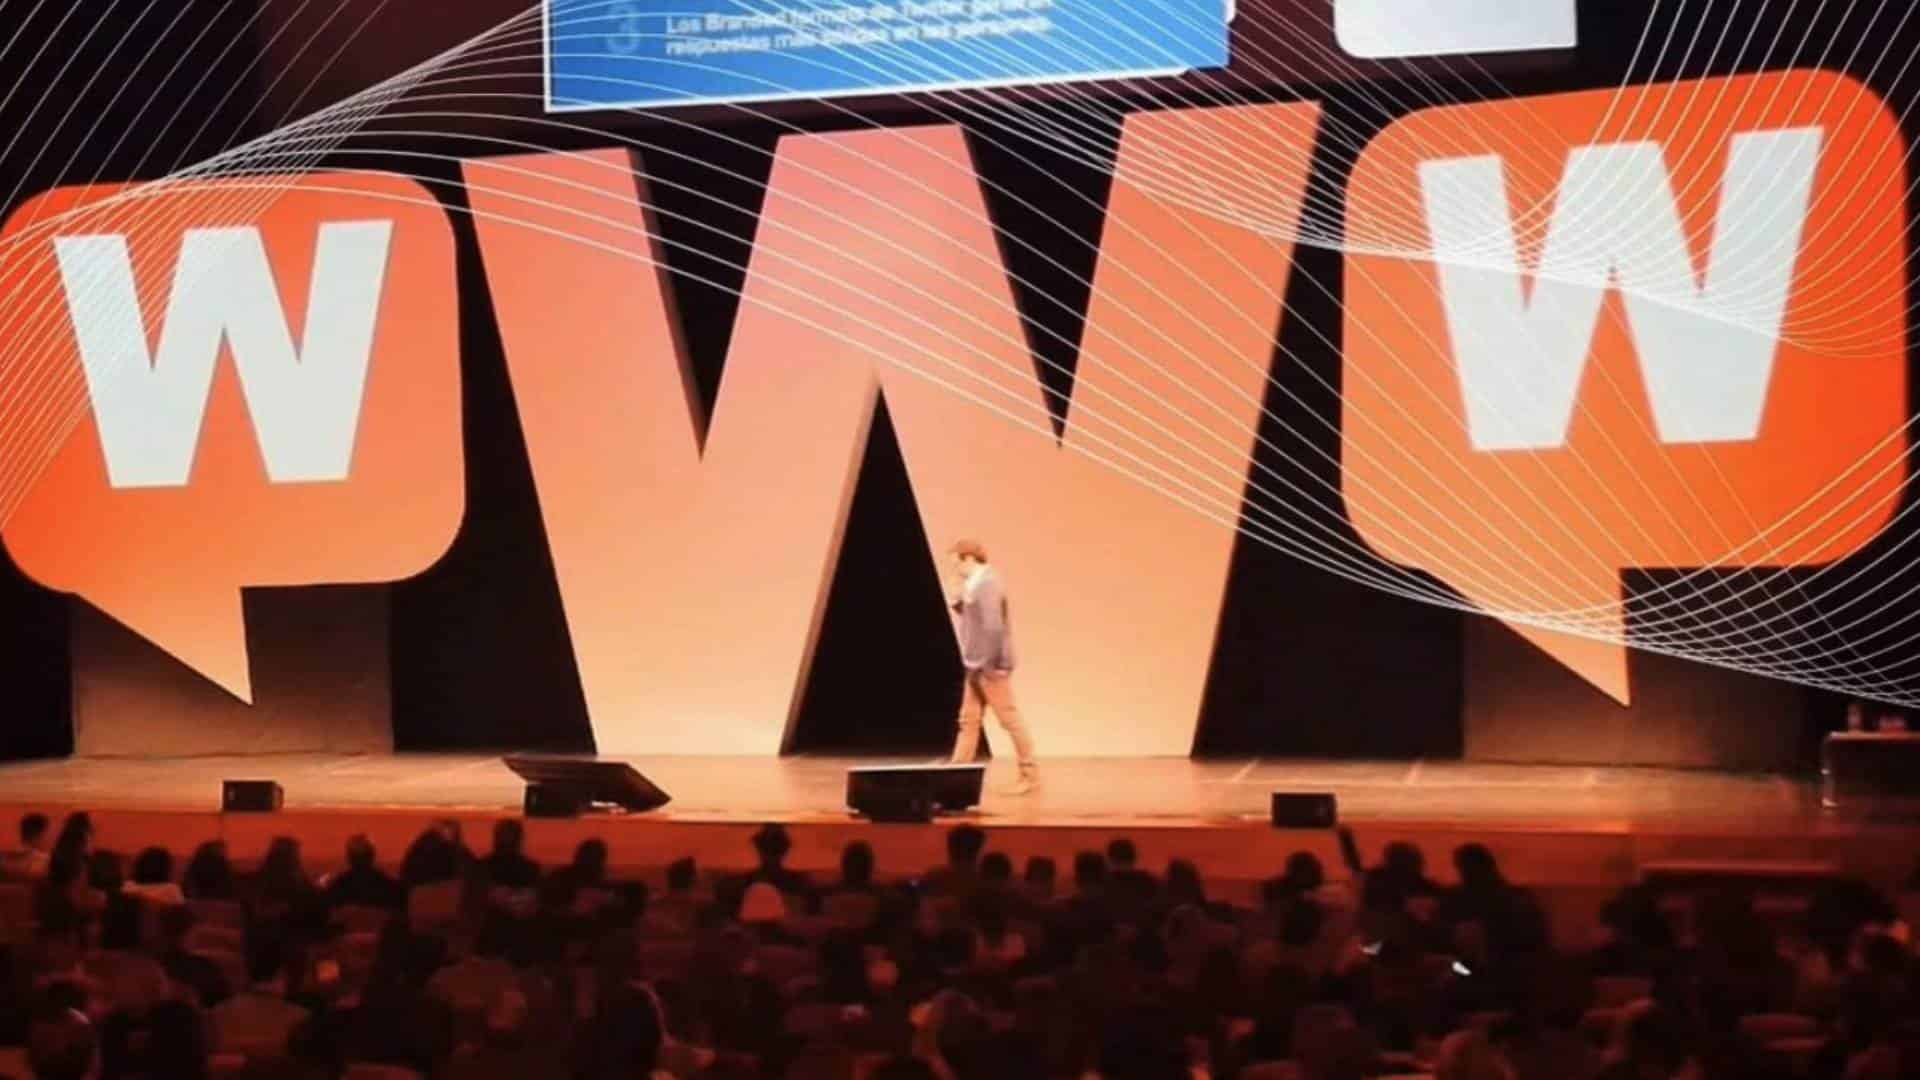 Inicia en Bogotá el WebCongress, un evento de emprendimiento, innovación y marketing